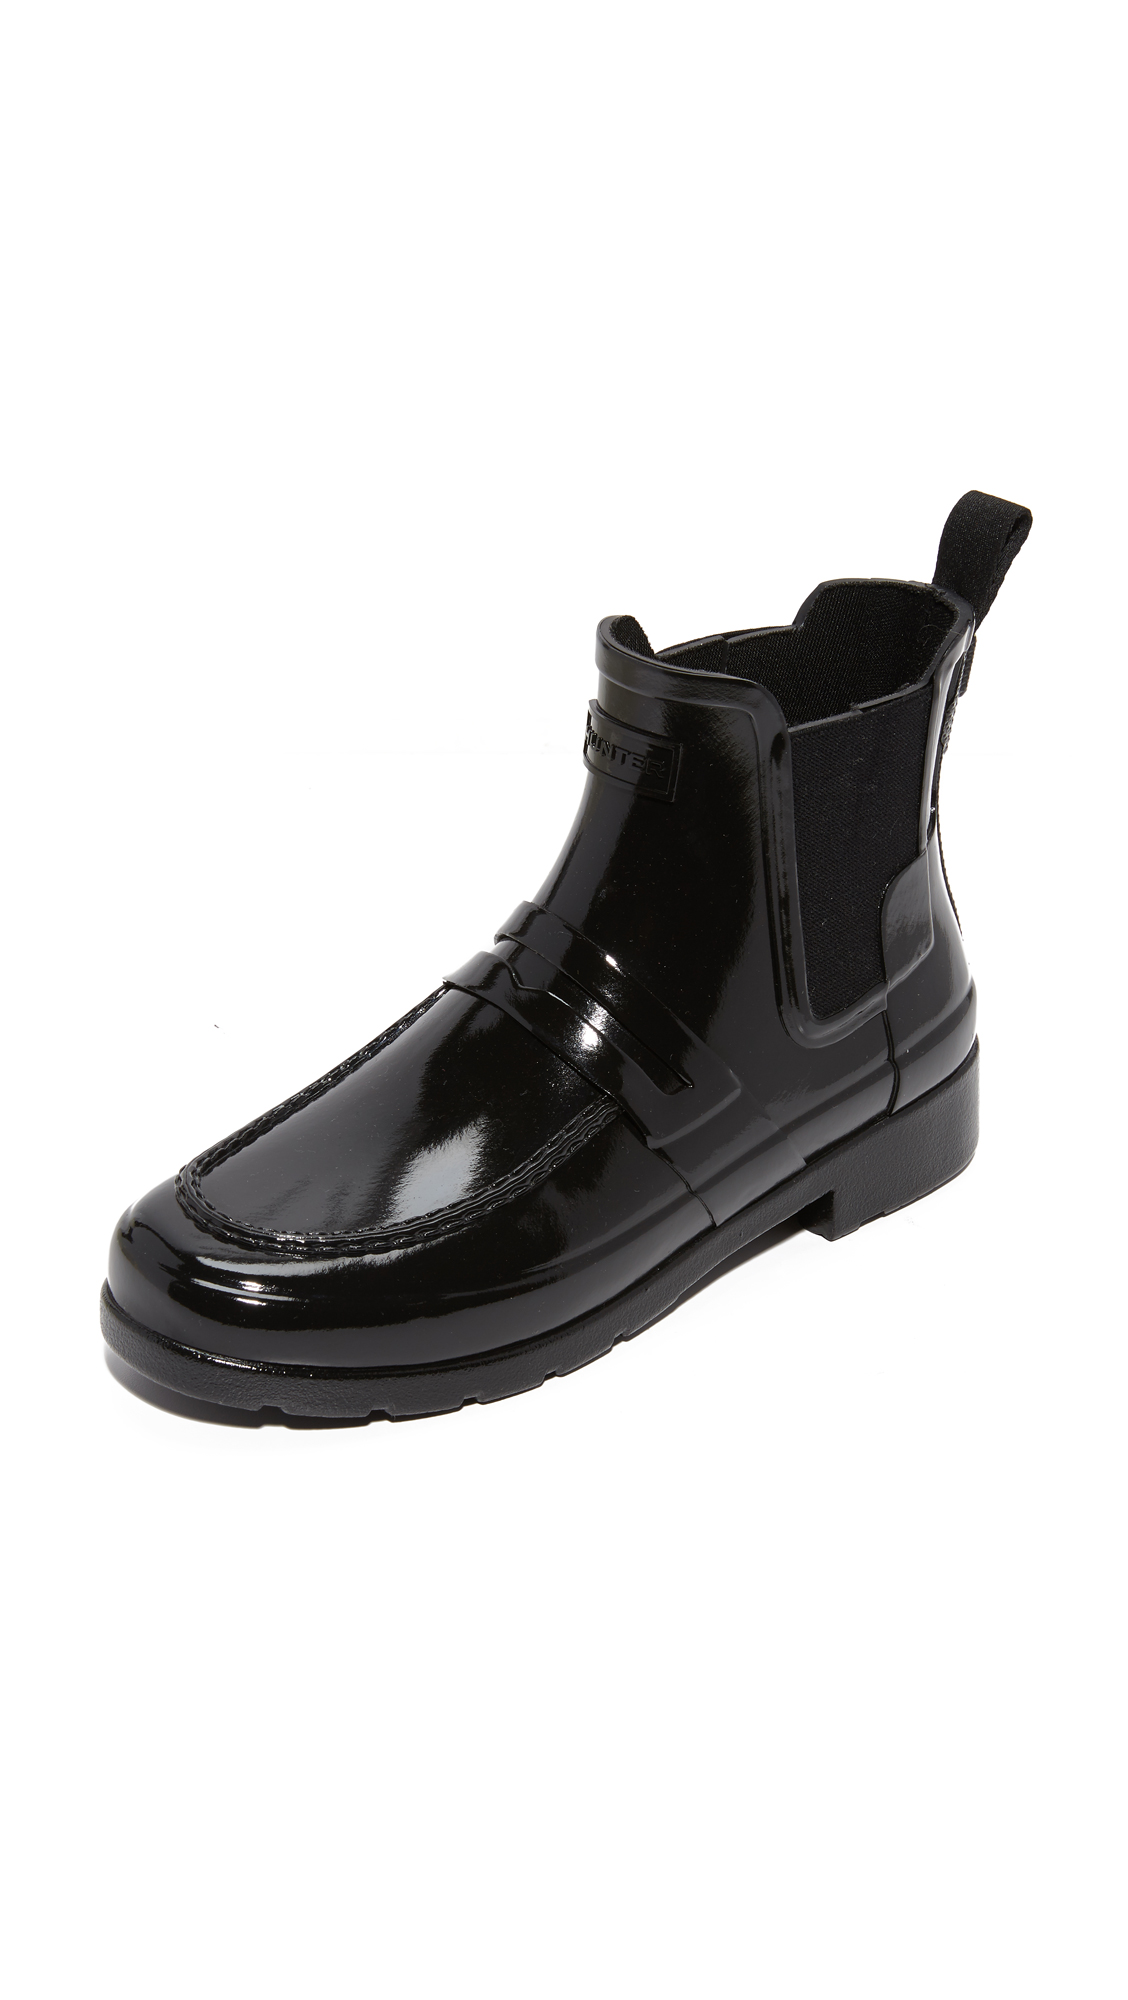 Hunter Boots Original Refined Penny Loafer Booties - Black at Shopbop